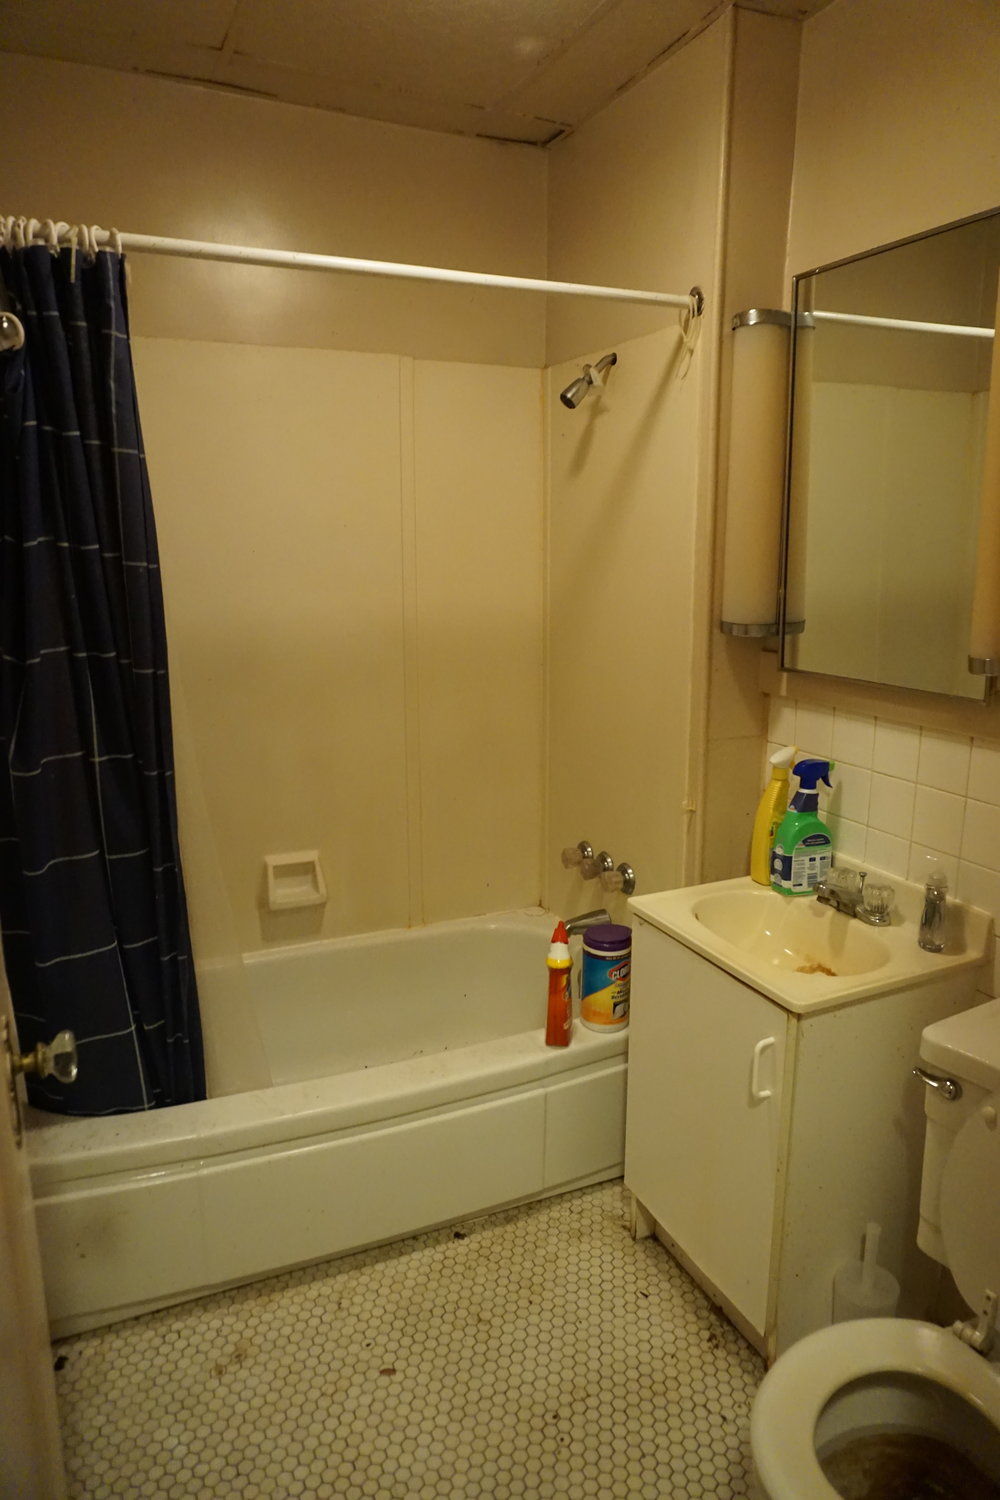 After phase 1 deep bathroom cleaning began